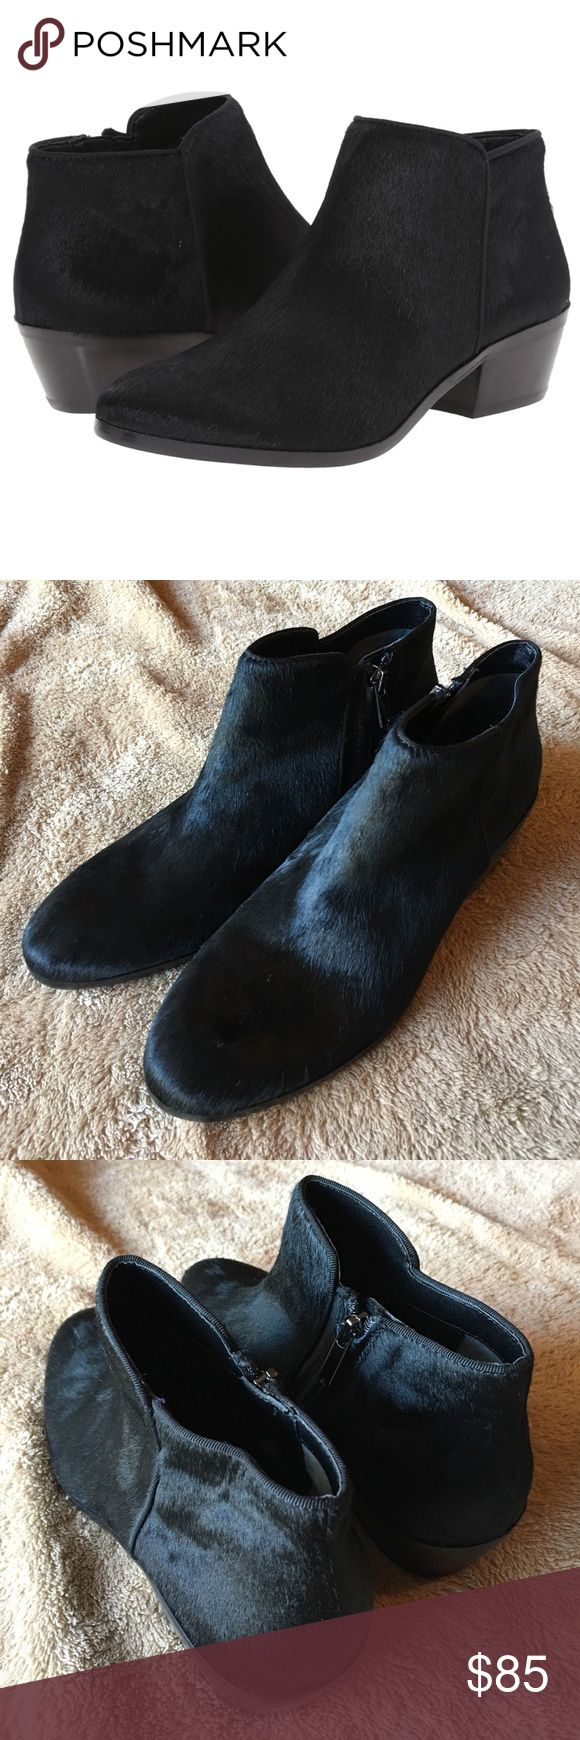 BRAND NEW! Sam Edelman Black Brahma Petty Booties Brand new! Never been worn! Black brahma color featuring genuine cow fur - it is sooo soft. made with dyed real fur from cow. Fur origin: China. Our signature Petty ankle boot is a seasonless staple among starlets and street-style icons alike. Granted 'cult favorite' status for combining comfort, style and versatility, the must-have bootie features a low, stacked heel and ankle zip. Pair yours with skinny denim and a slick leather jacket…